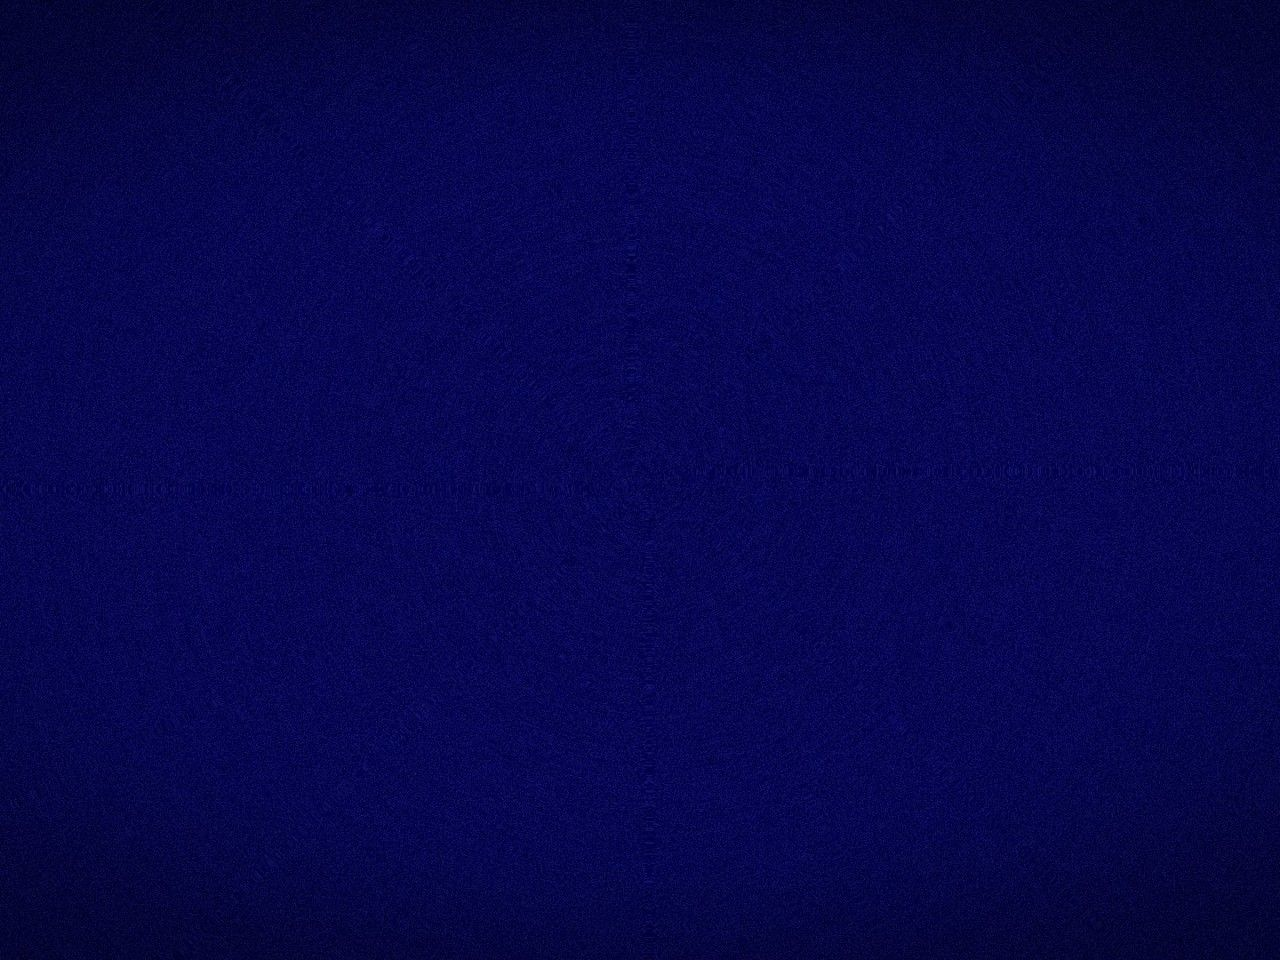 1280x960 Surface Solid Blue Dark Wallpaper Fullscreen Wallpapeprscraft